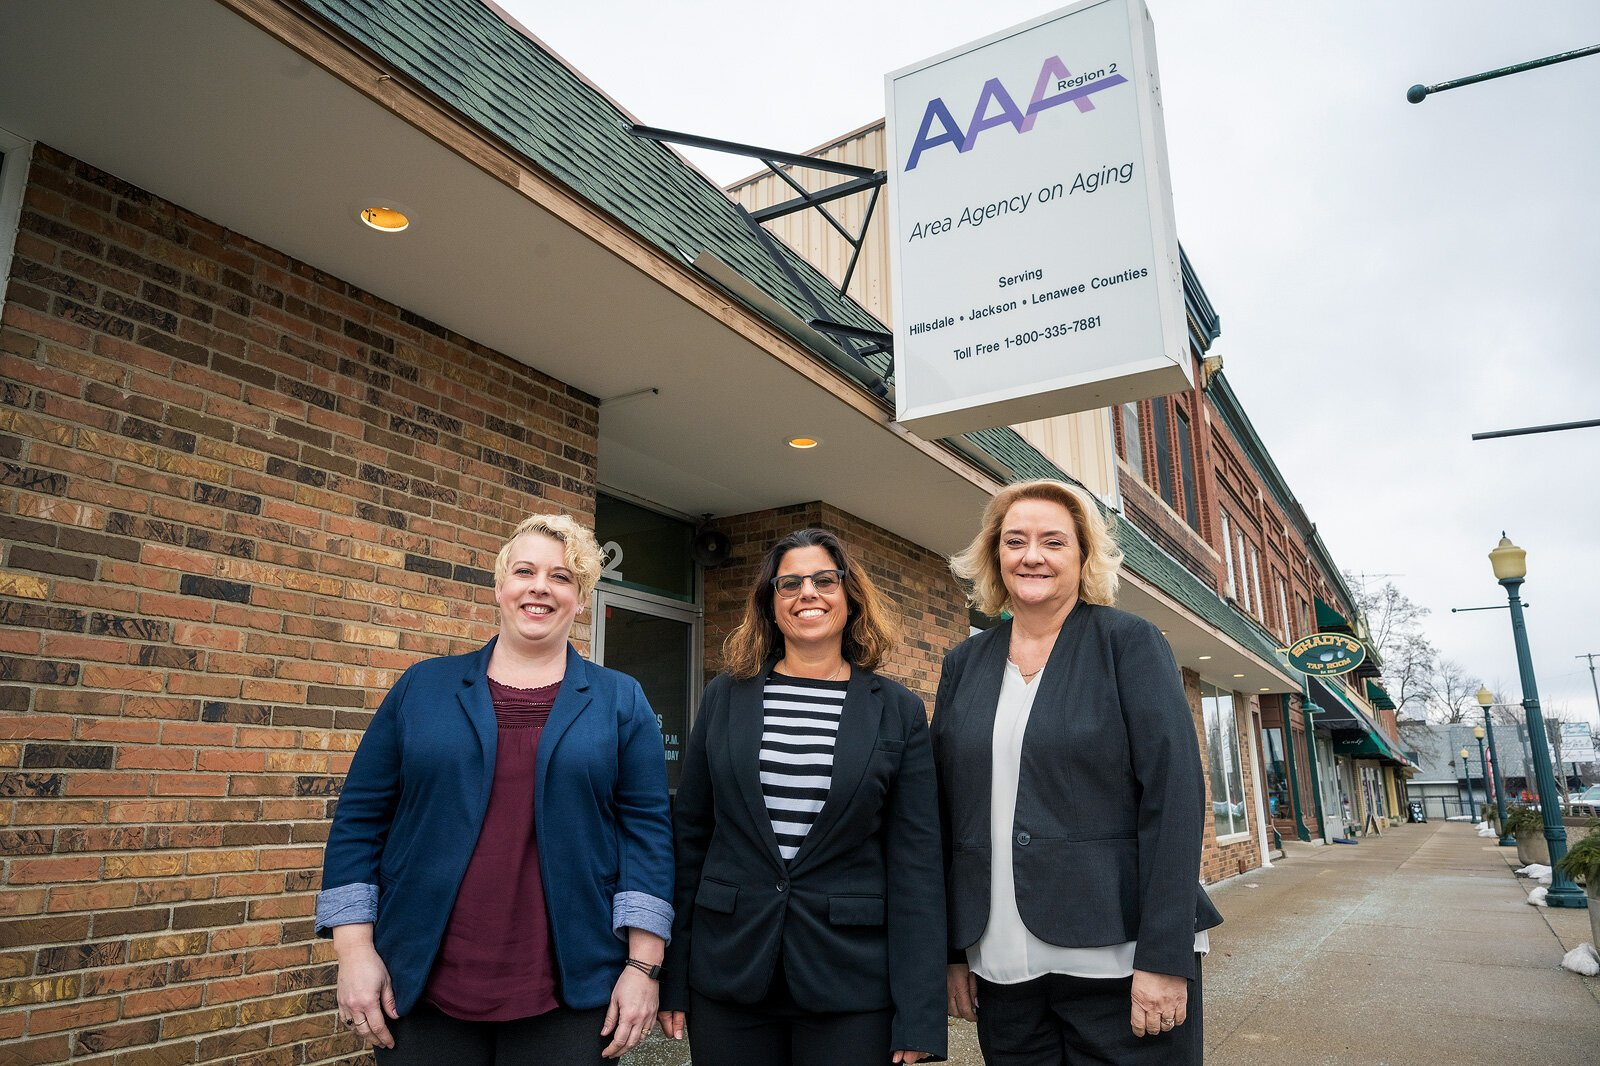 R2AAA elder-abuse victims specialist program manager Angela Shepherd, R2AAA assistant director Kara Lorenz-Goings, and R2AAA executive director Julie Wetherby.